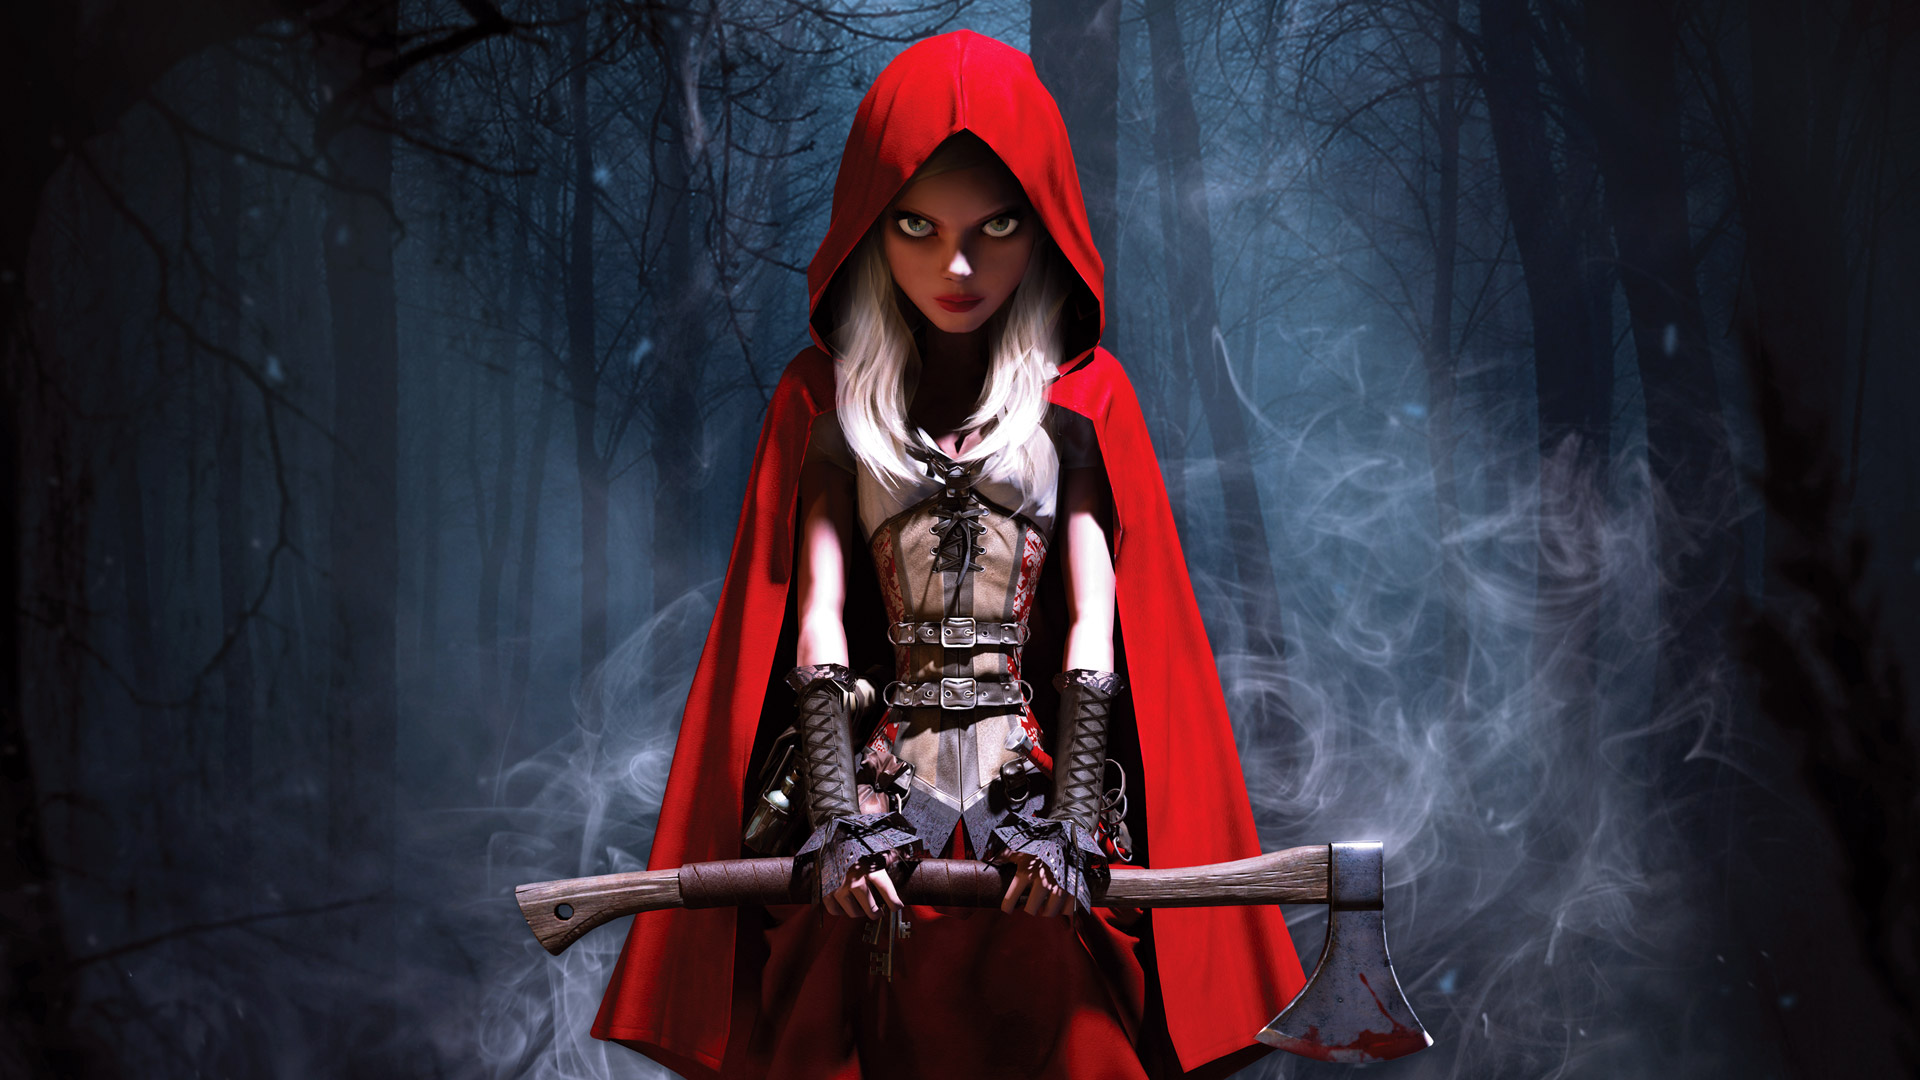 Red Riding Hood Pics, Fantasy Collection